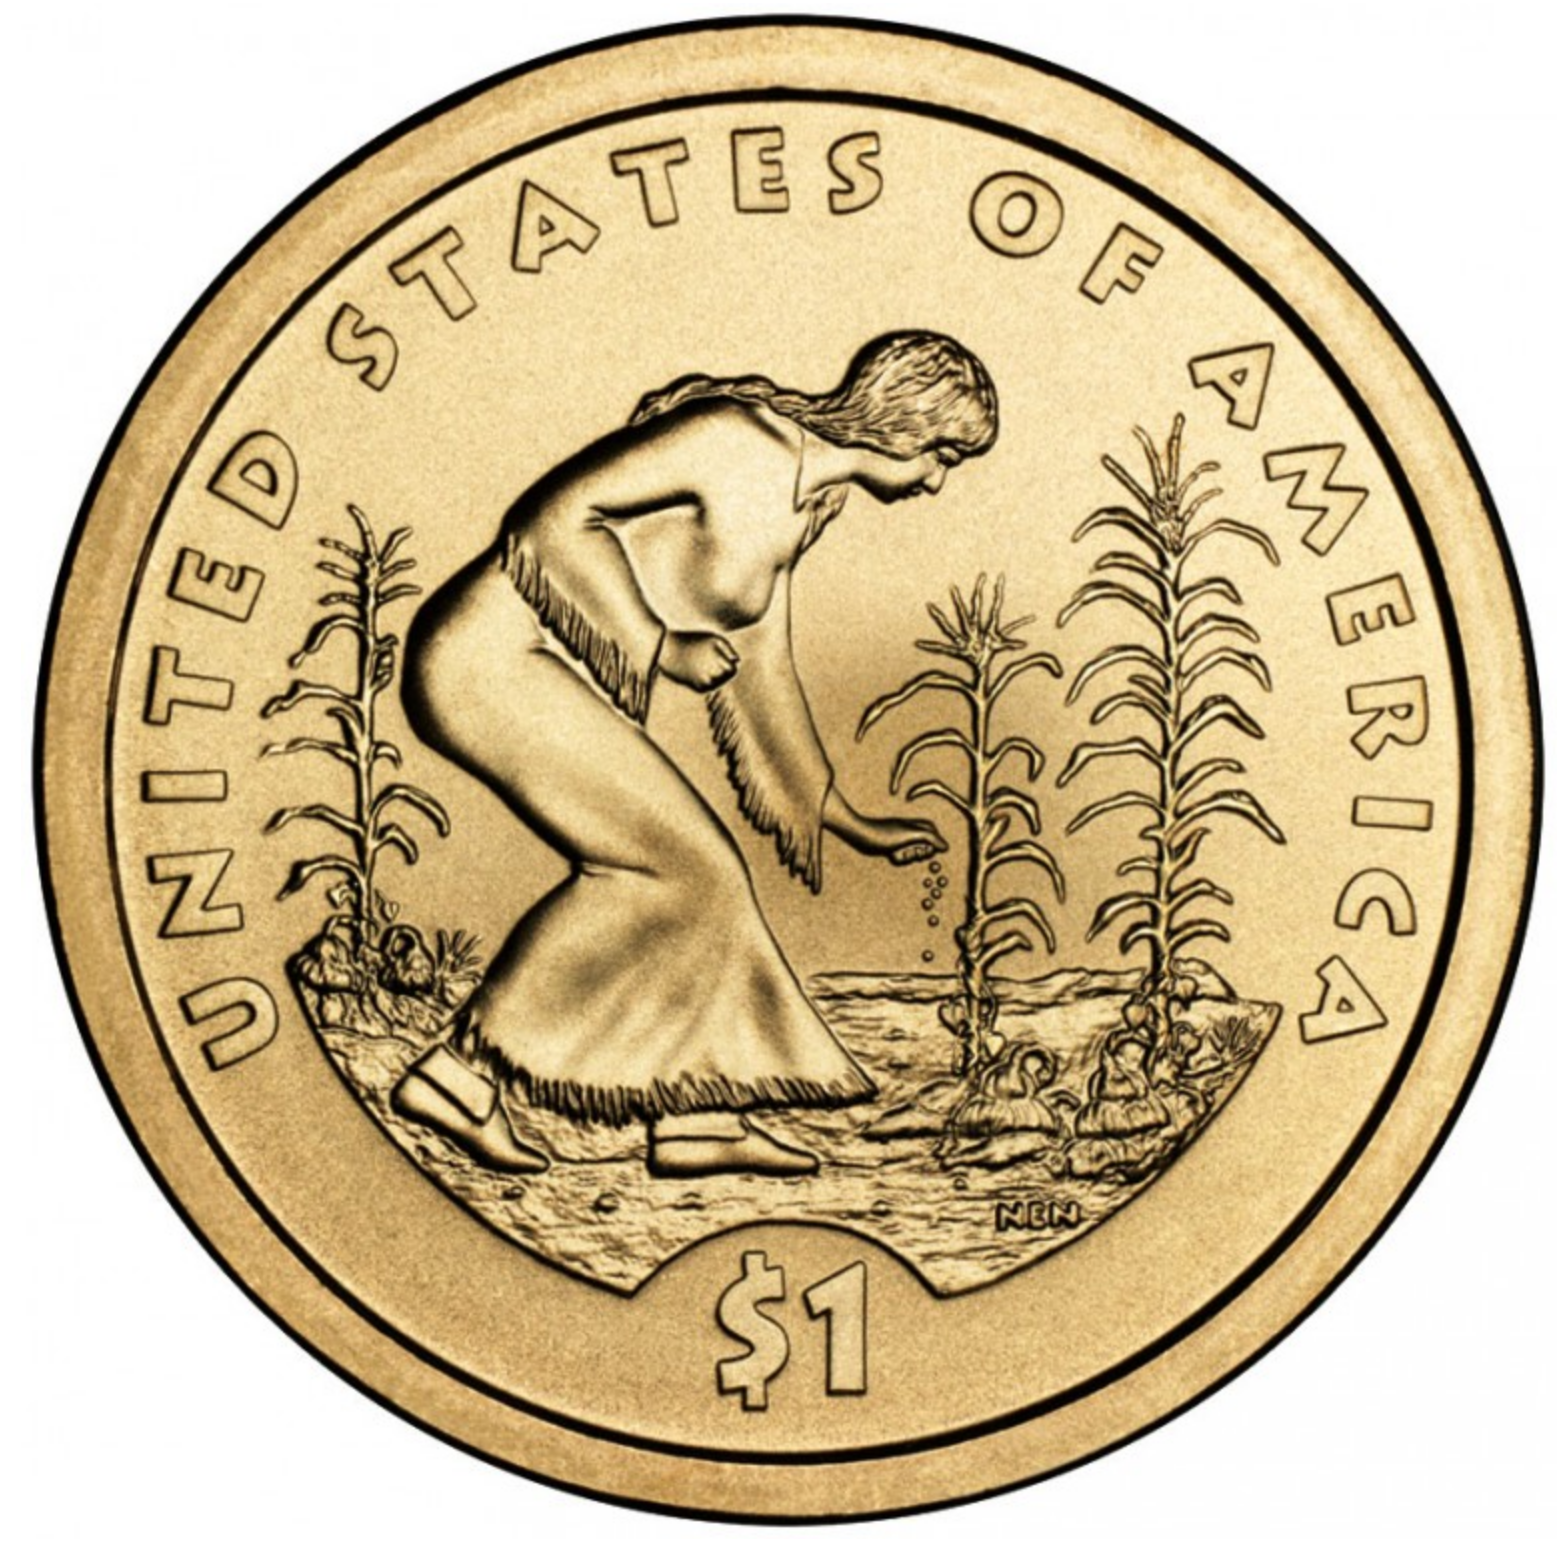 2009 Native American commemorative coin pays tribute to maize, beans and squash.